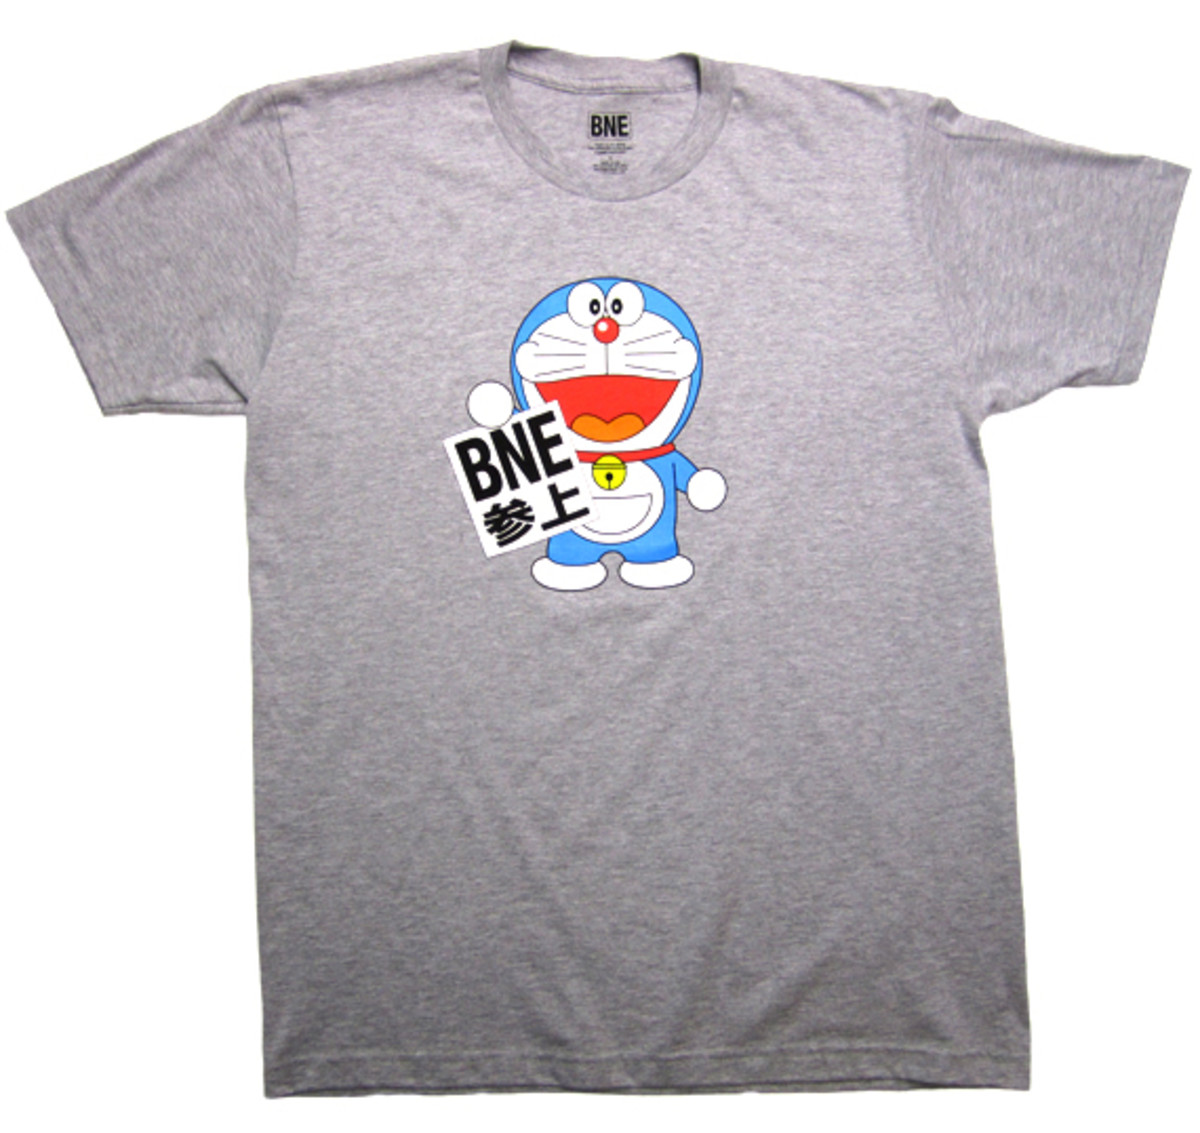 bne-water-foundation-fukushima-relief-collection-02